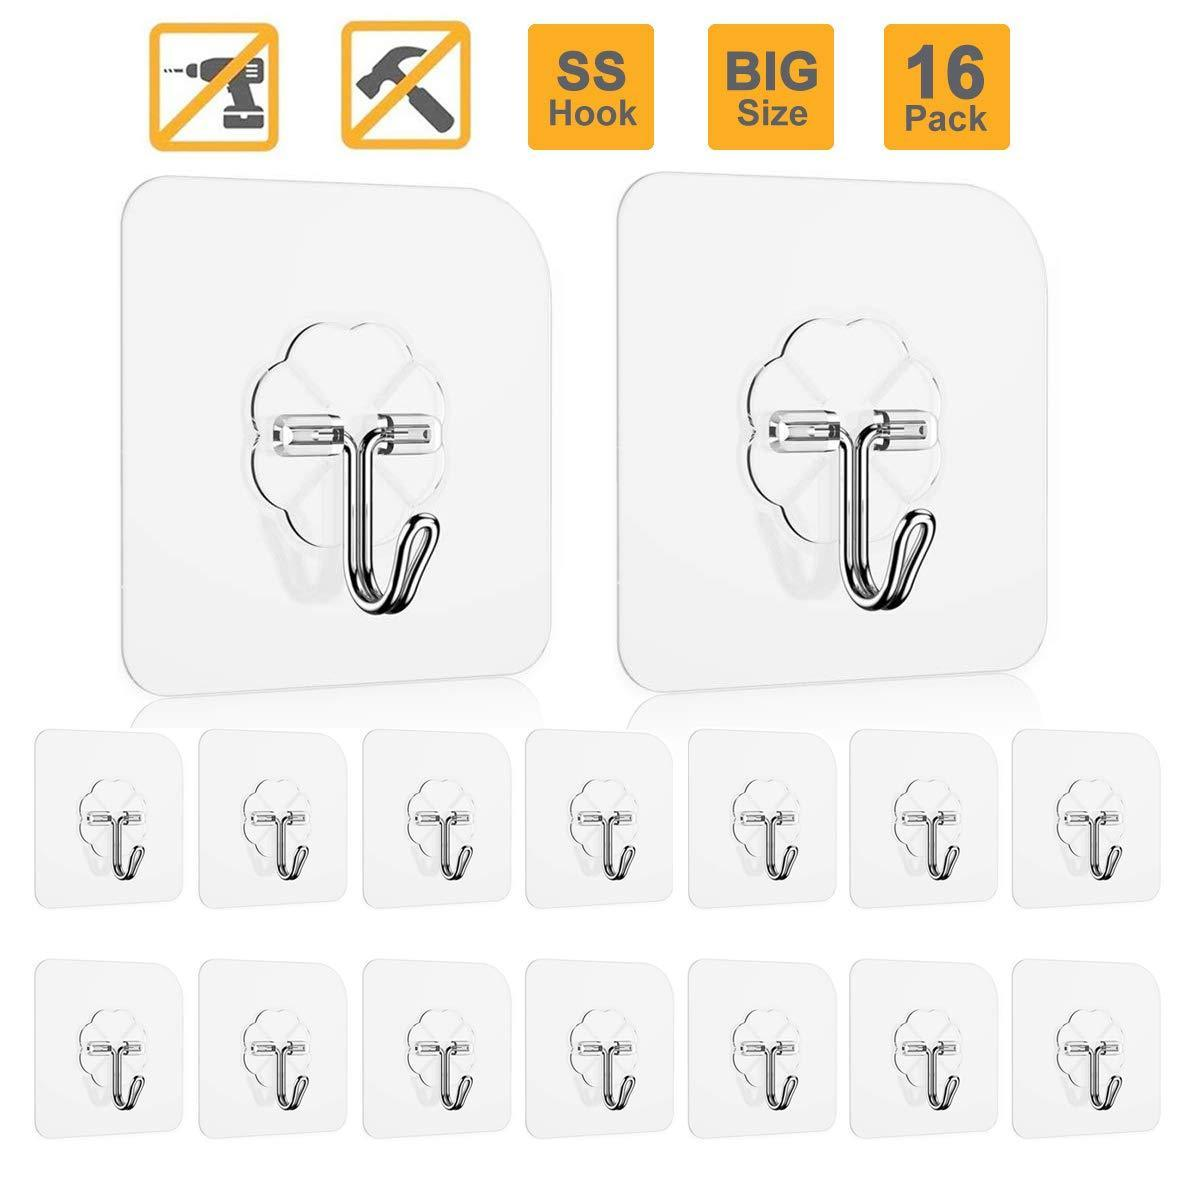 Purchase adhesive hooks key hooks coat hooks heavy duty wall hooks stainless steel waterproof wall hangers for robe coat towel keys bags home kitchen bathroom 16 pack